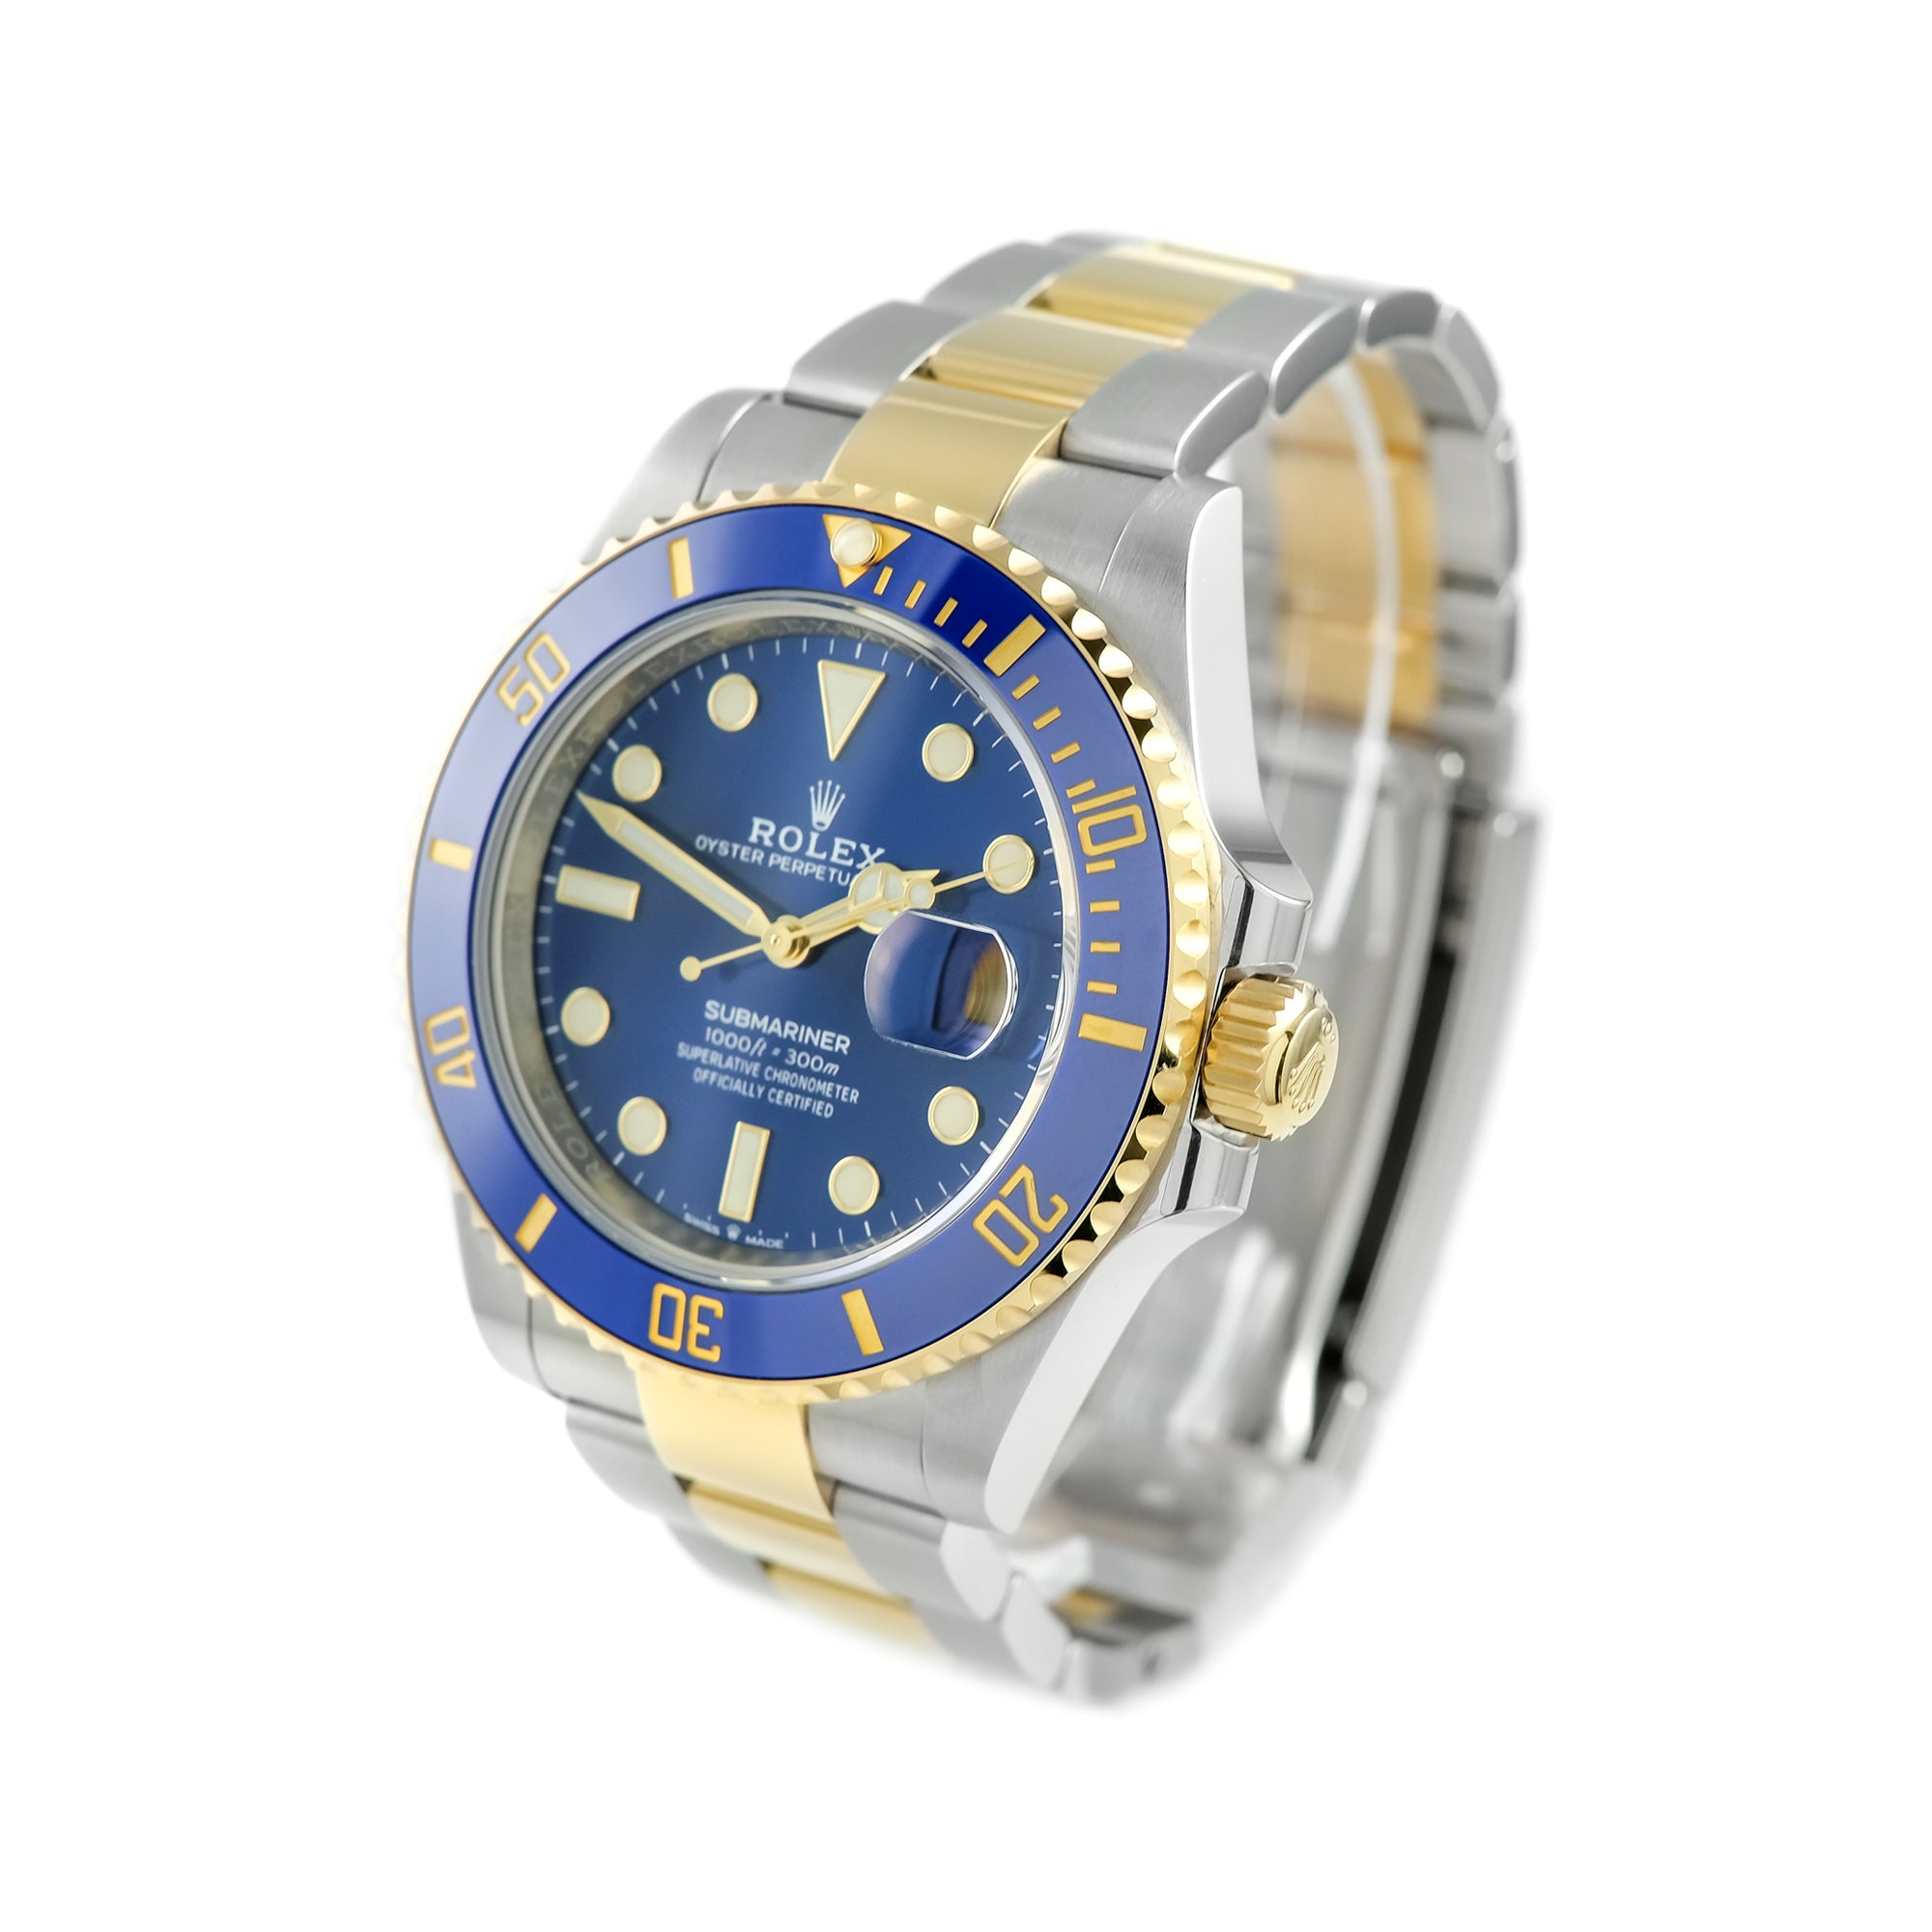 BRAND NEW ROLEX SUBMARINER 41MM